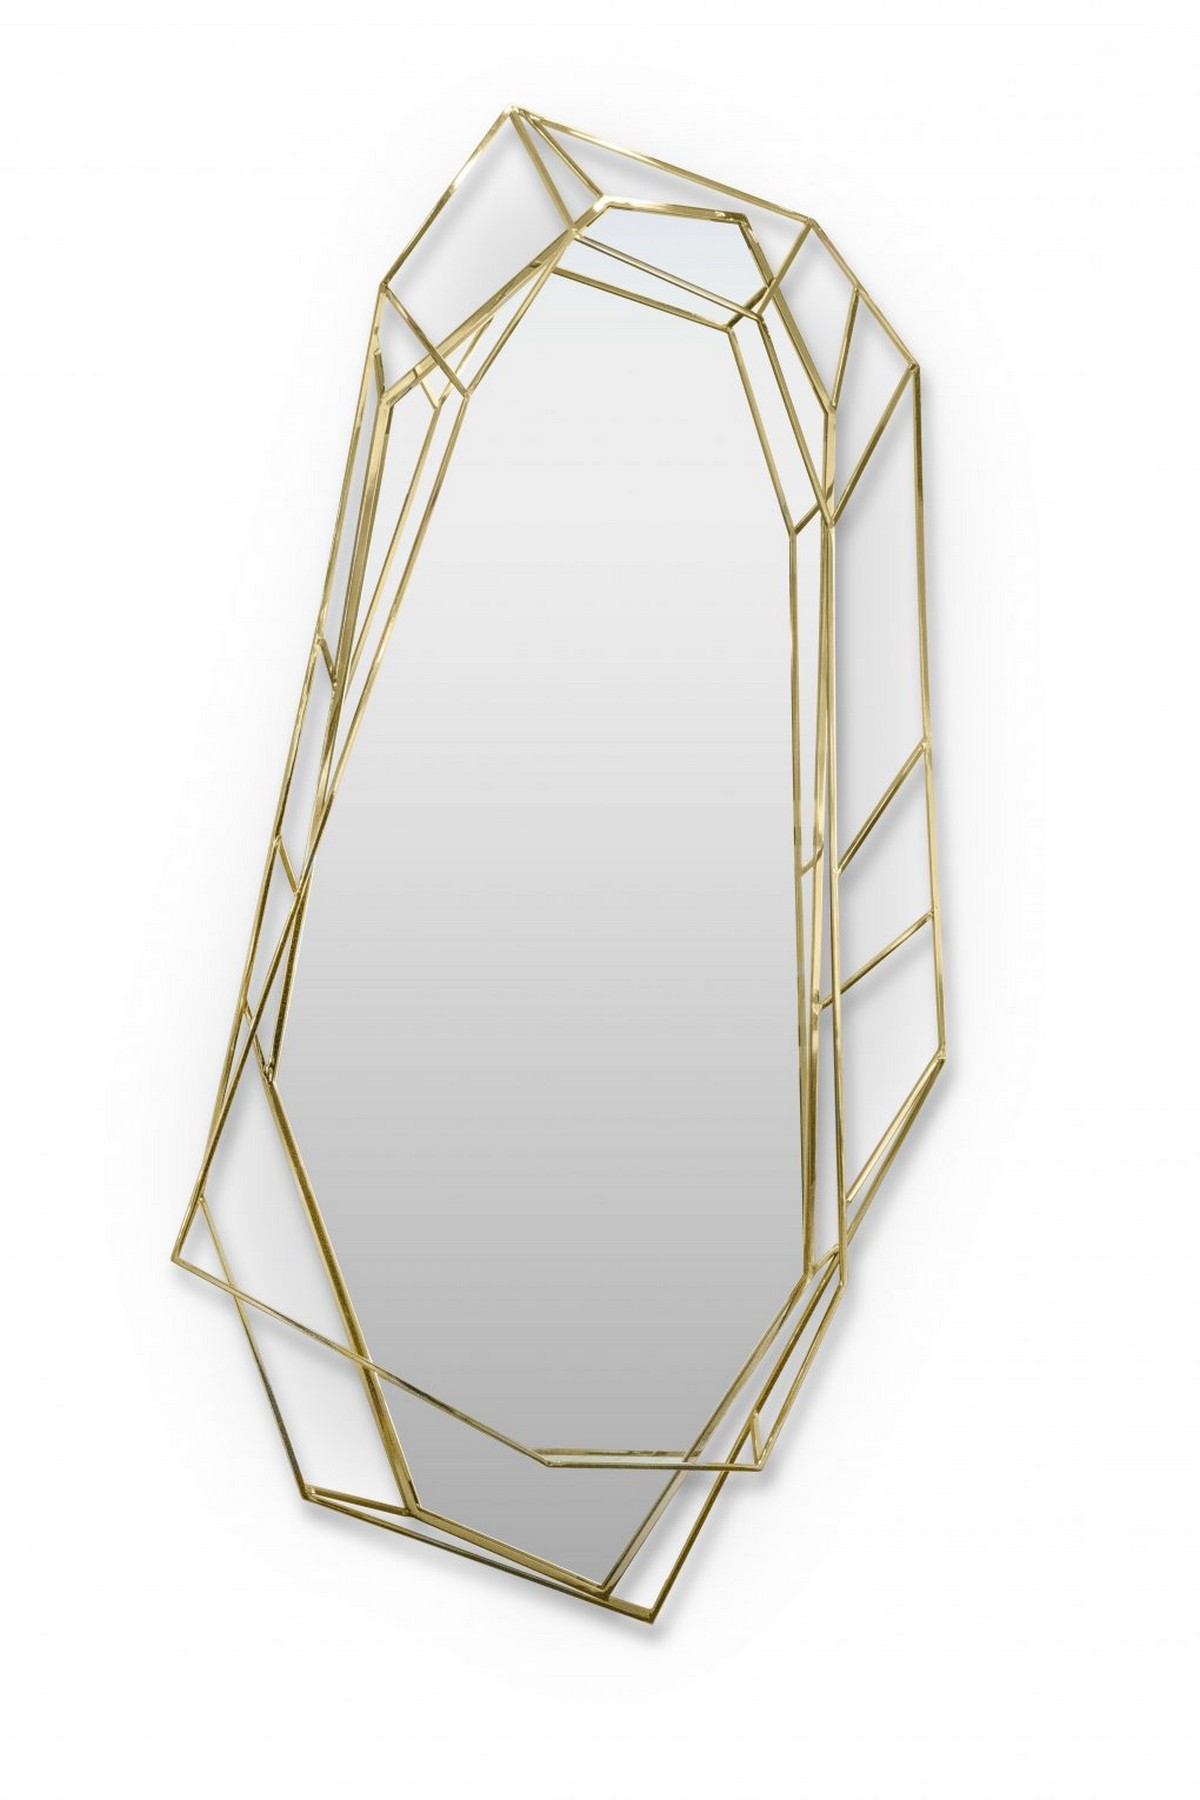 Maison et Objet 2019 Maison et Objet 2019: Luxury Mirror Designs by Covet House diamond